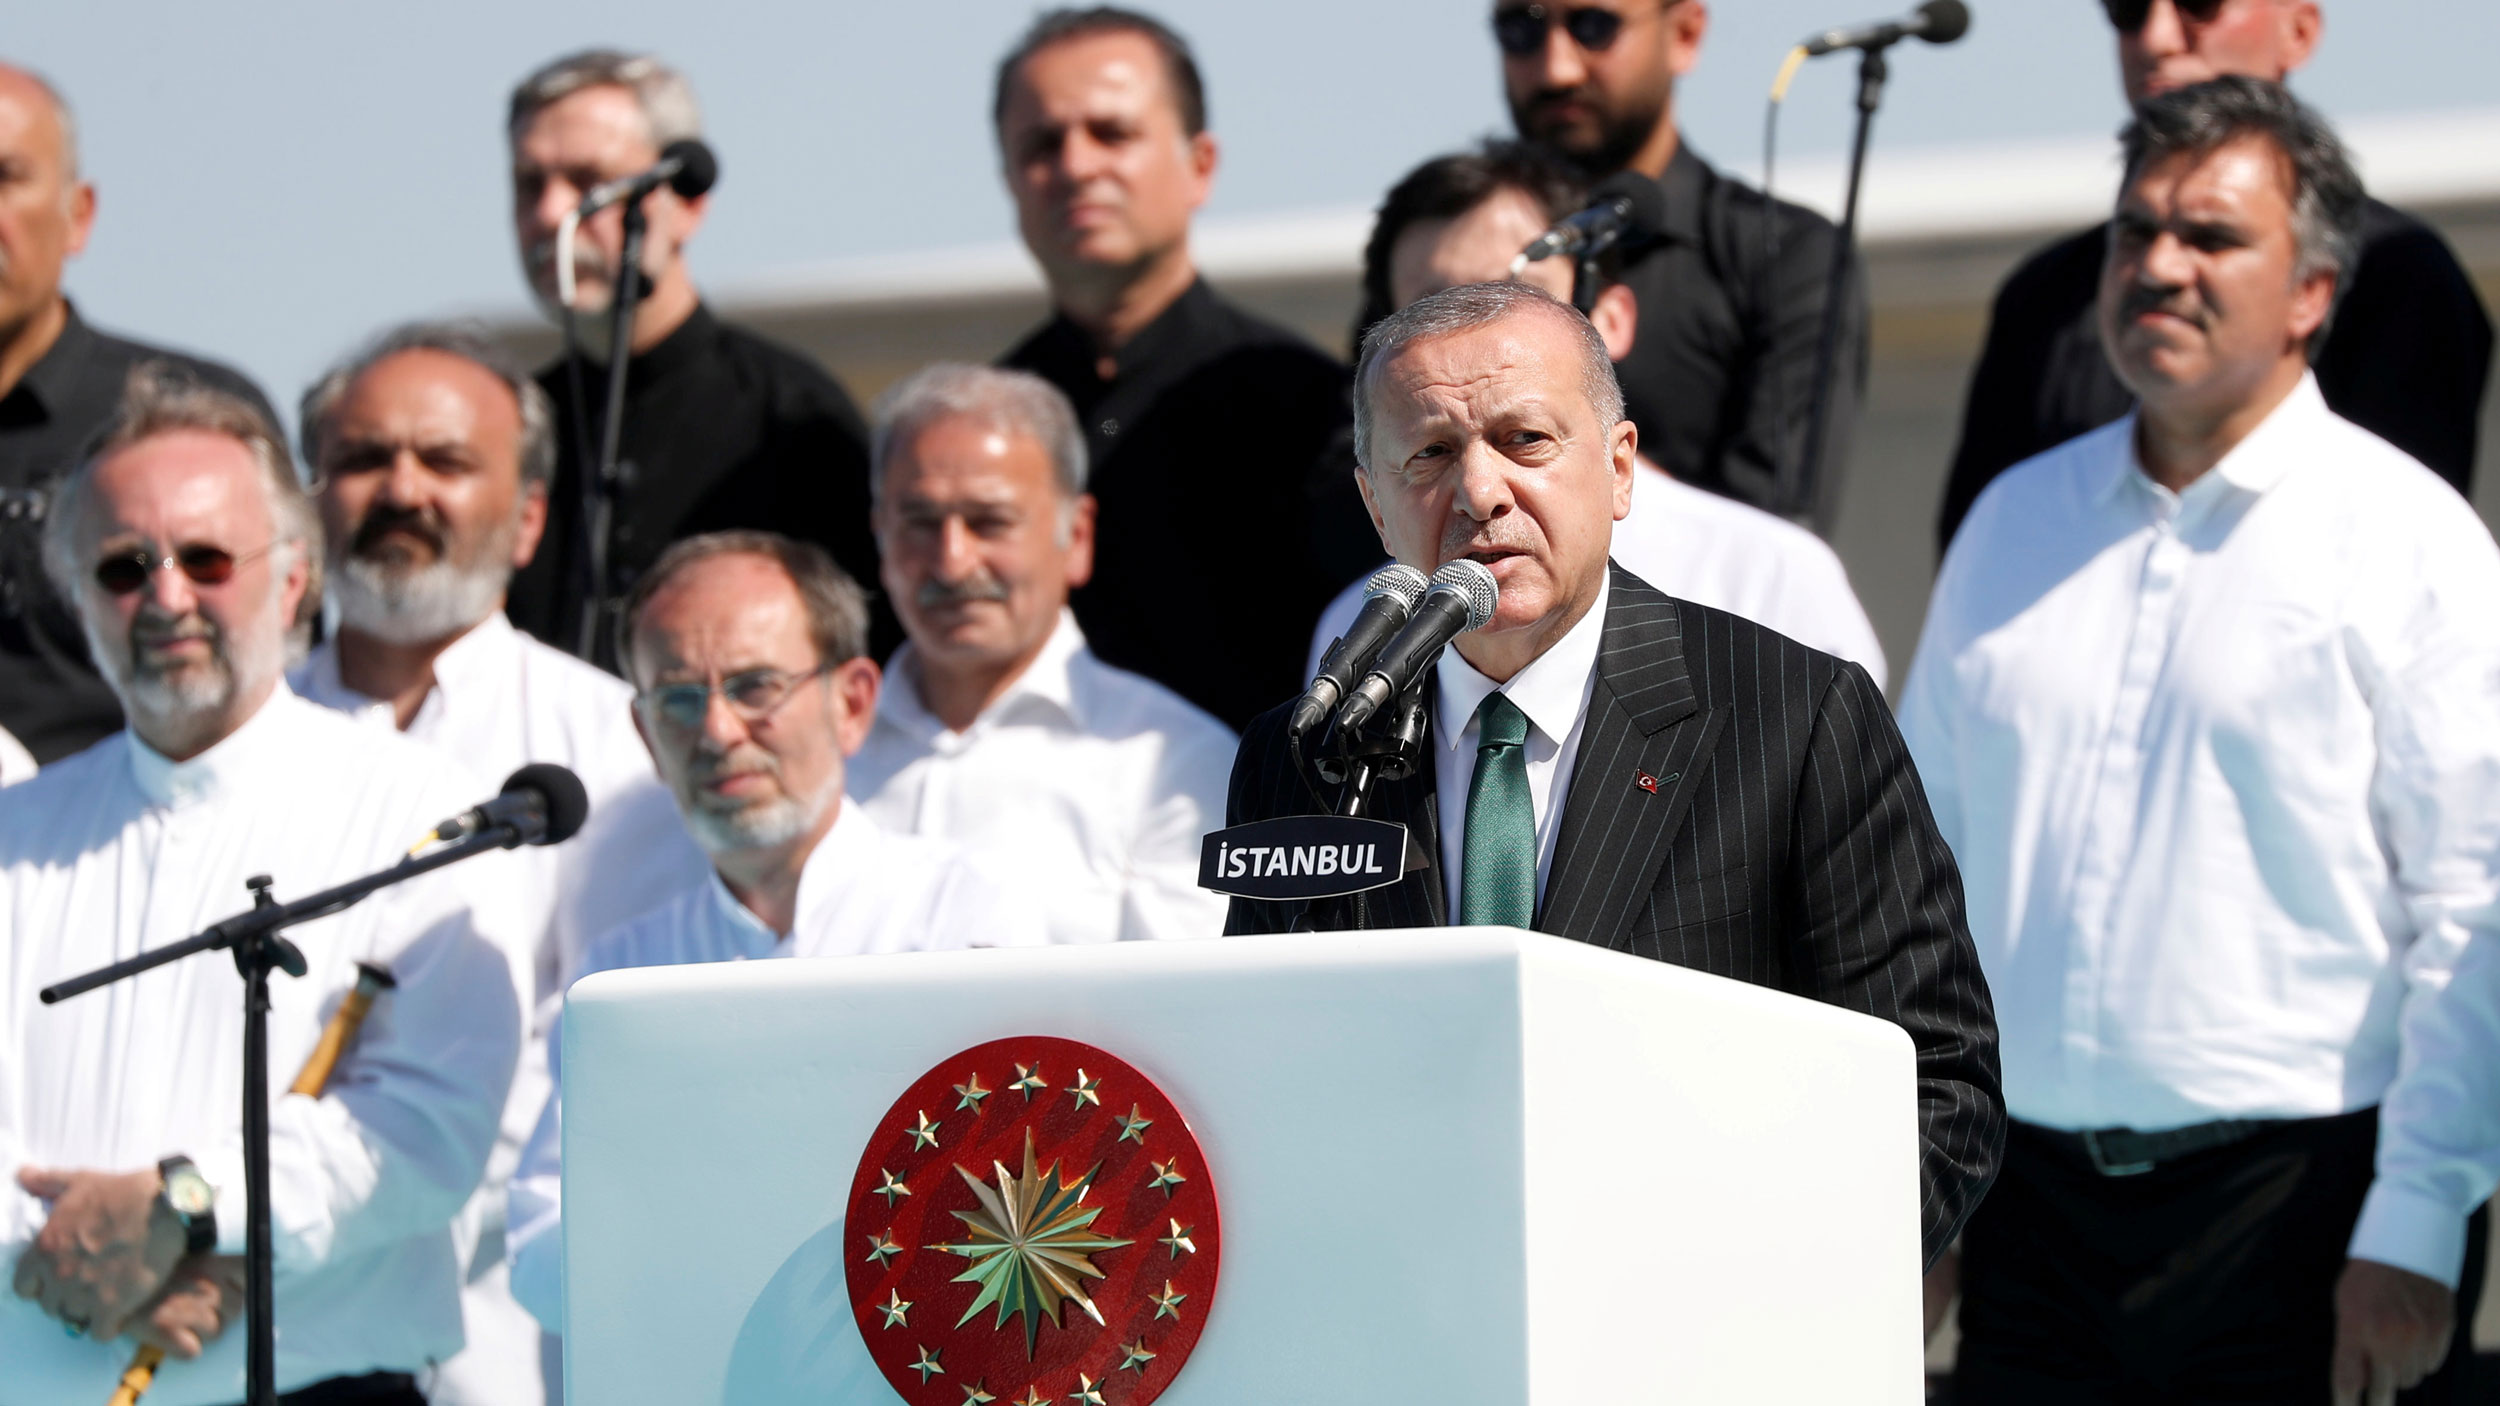 Turkish President Tayyip Erdoğan is shown making a speech behind a white podium with several stars on it.